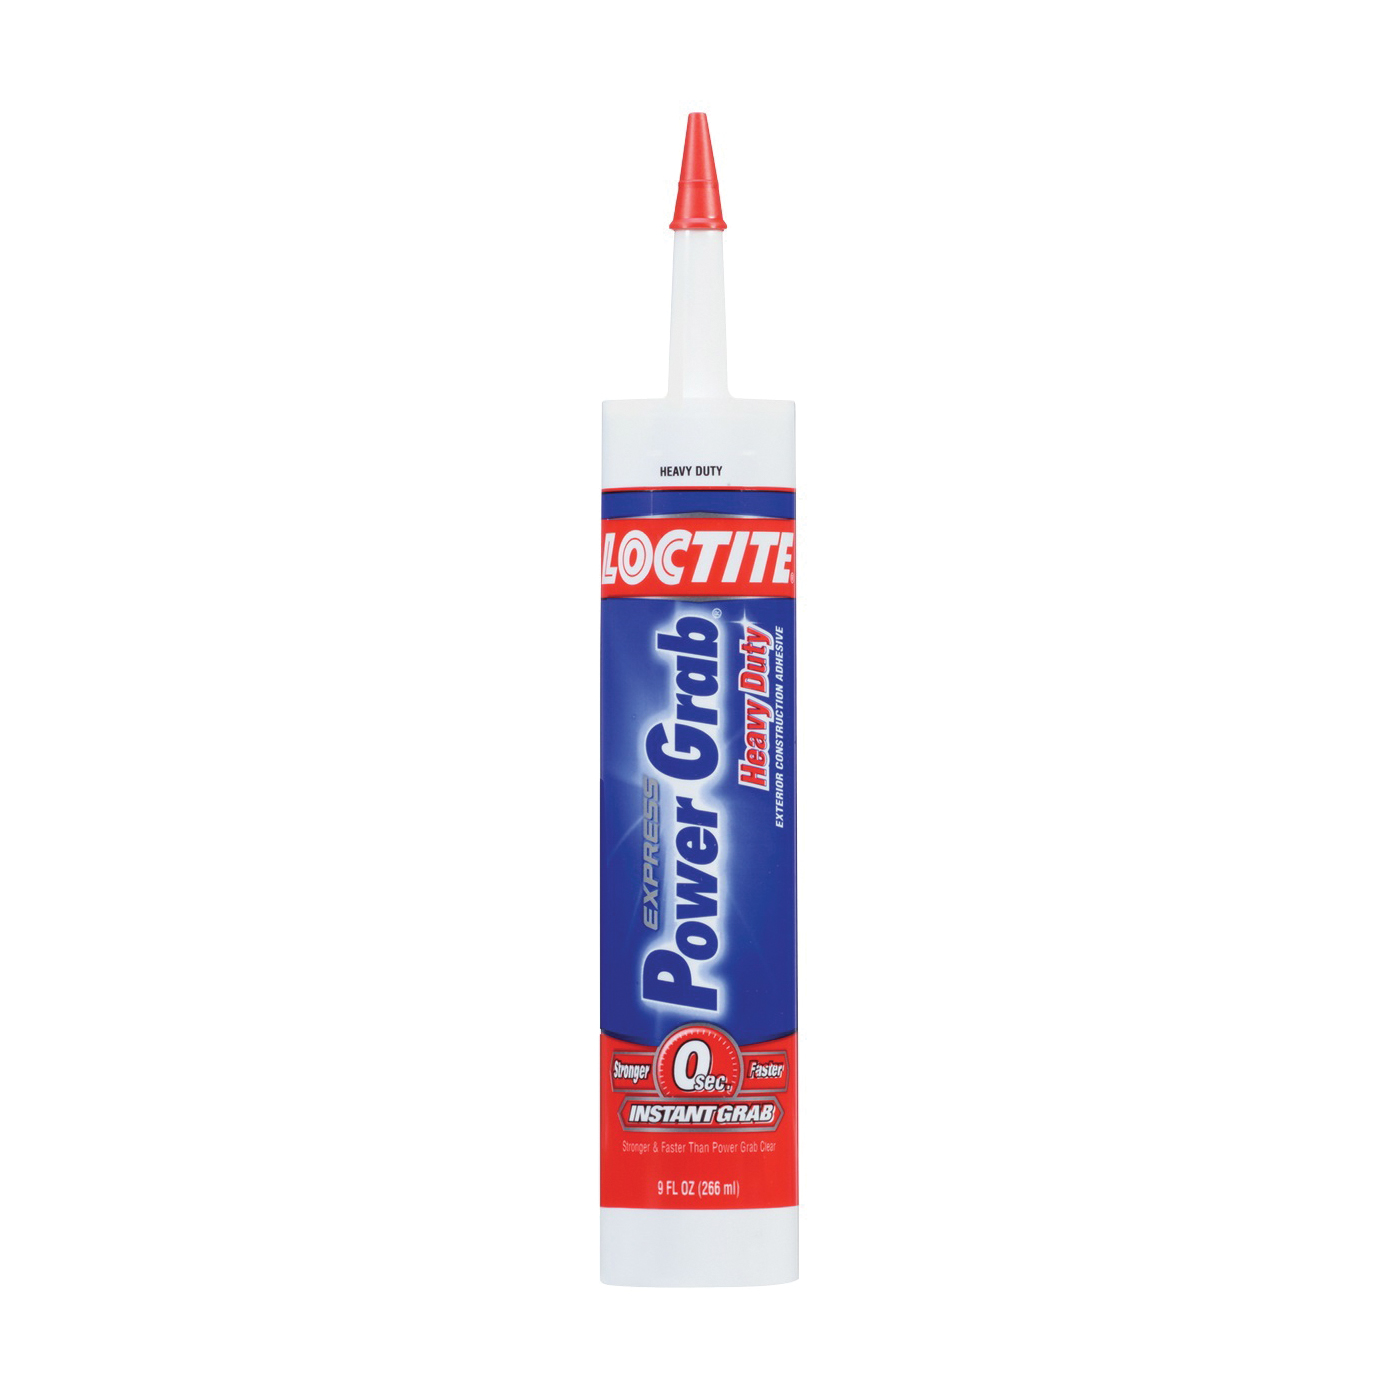 Picture of Loctite 2032666 Exterior Construction Adhesive, White, 9 fl-oz Package, Cartridge